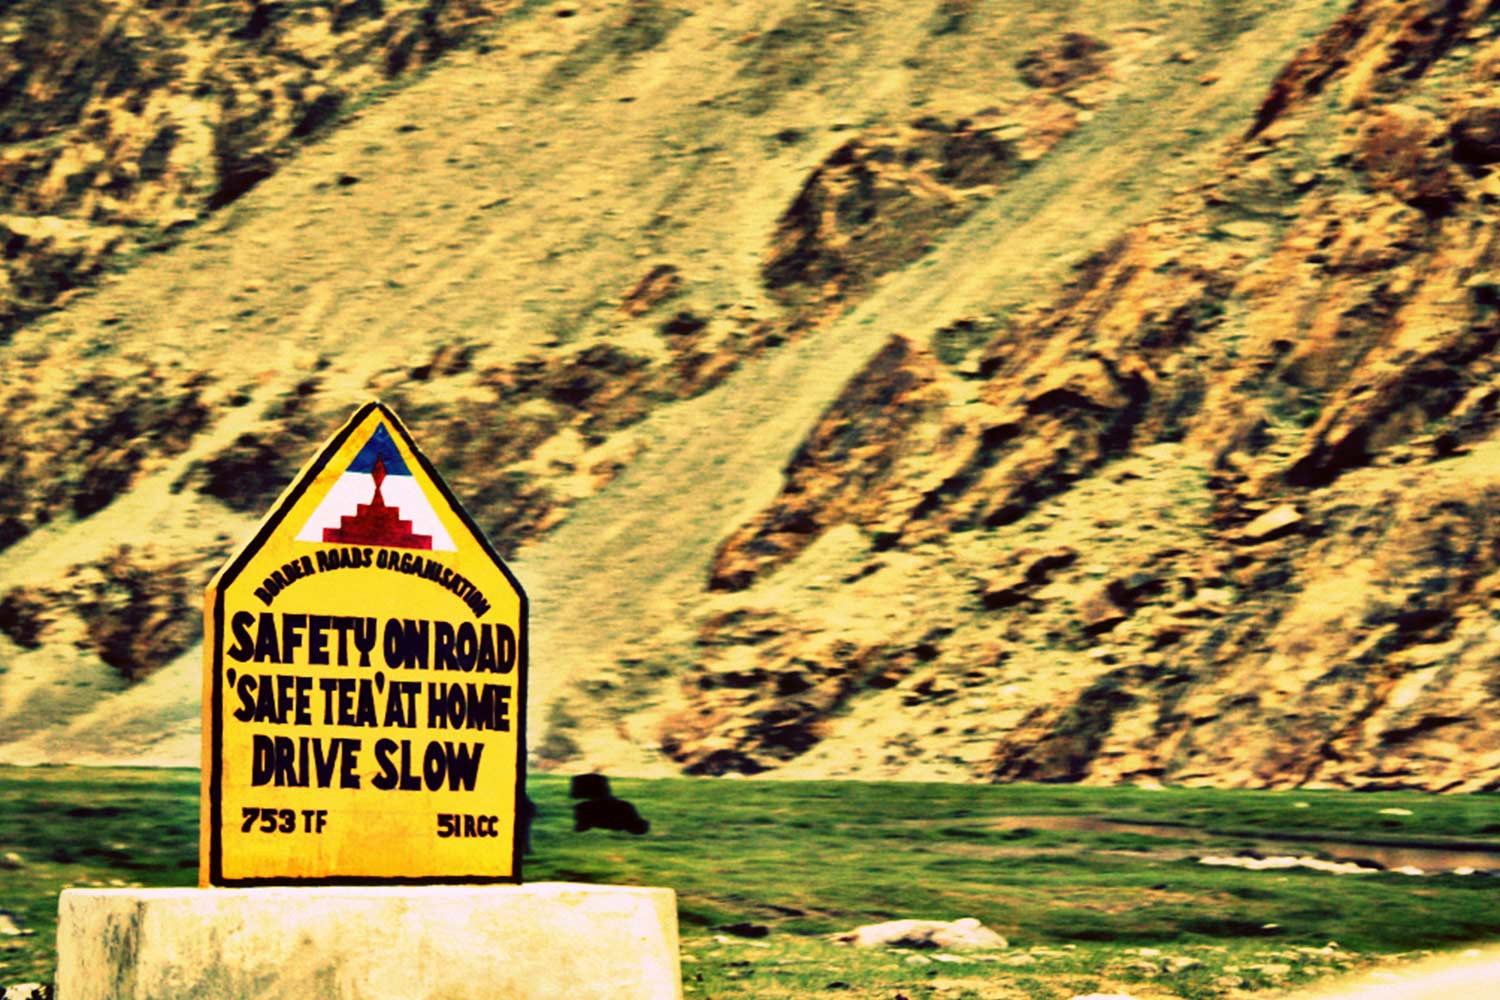 Funny Signboards-Saftey on road safe tea at home droive slow